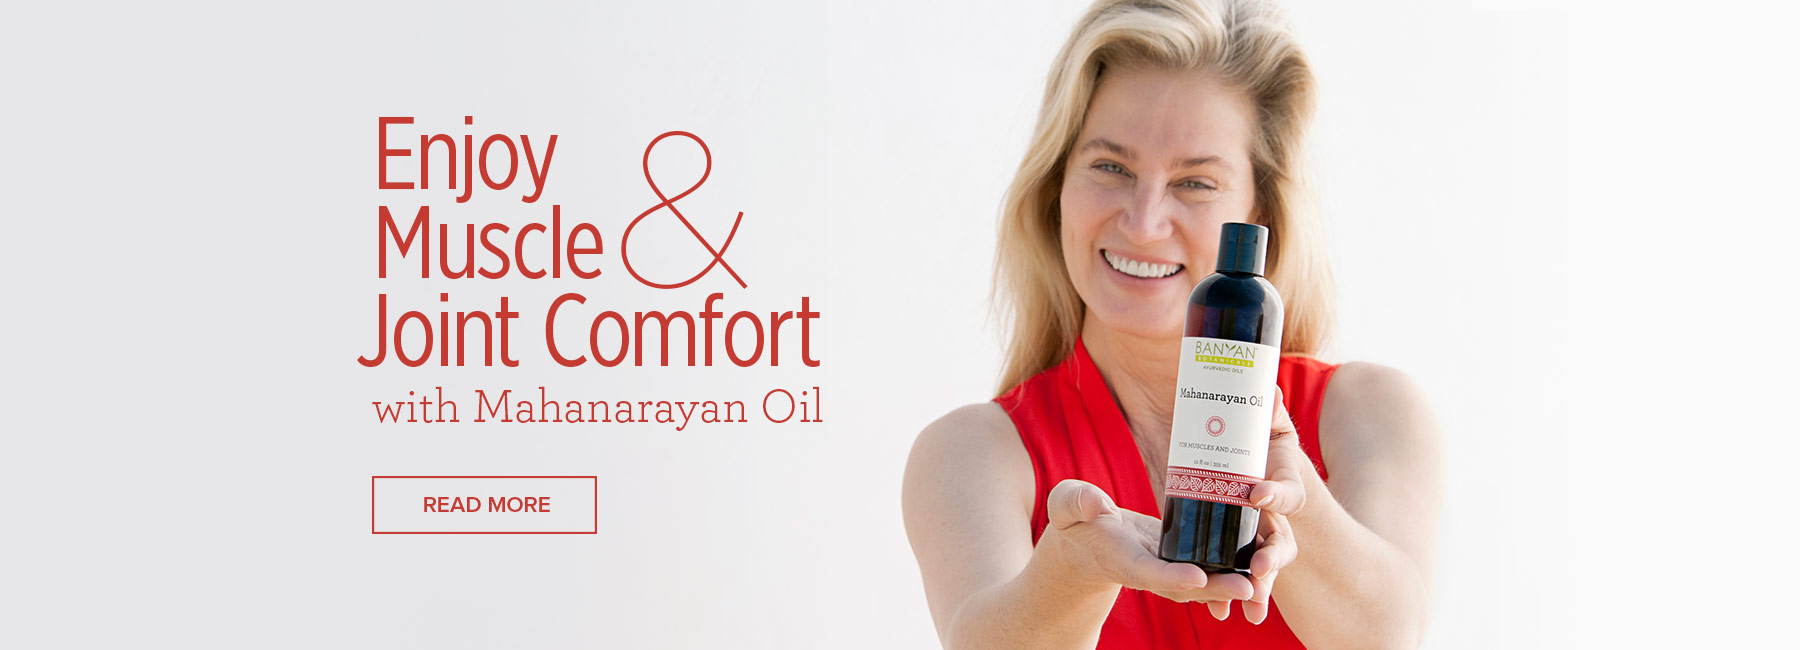 Enjoy Muscle and Joint Comfort with Mahanarayan Oil